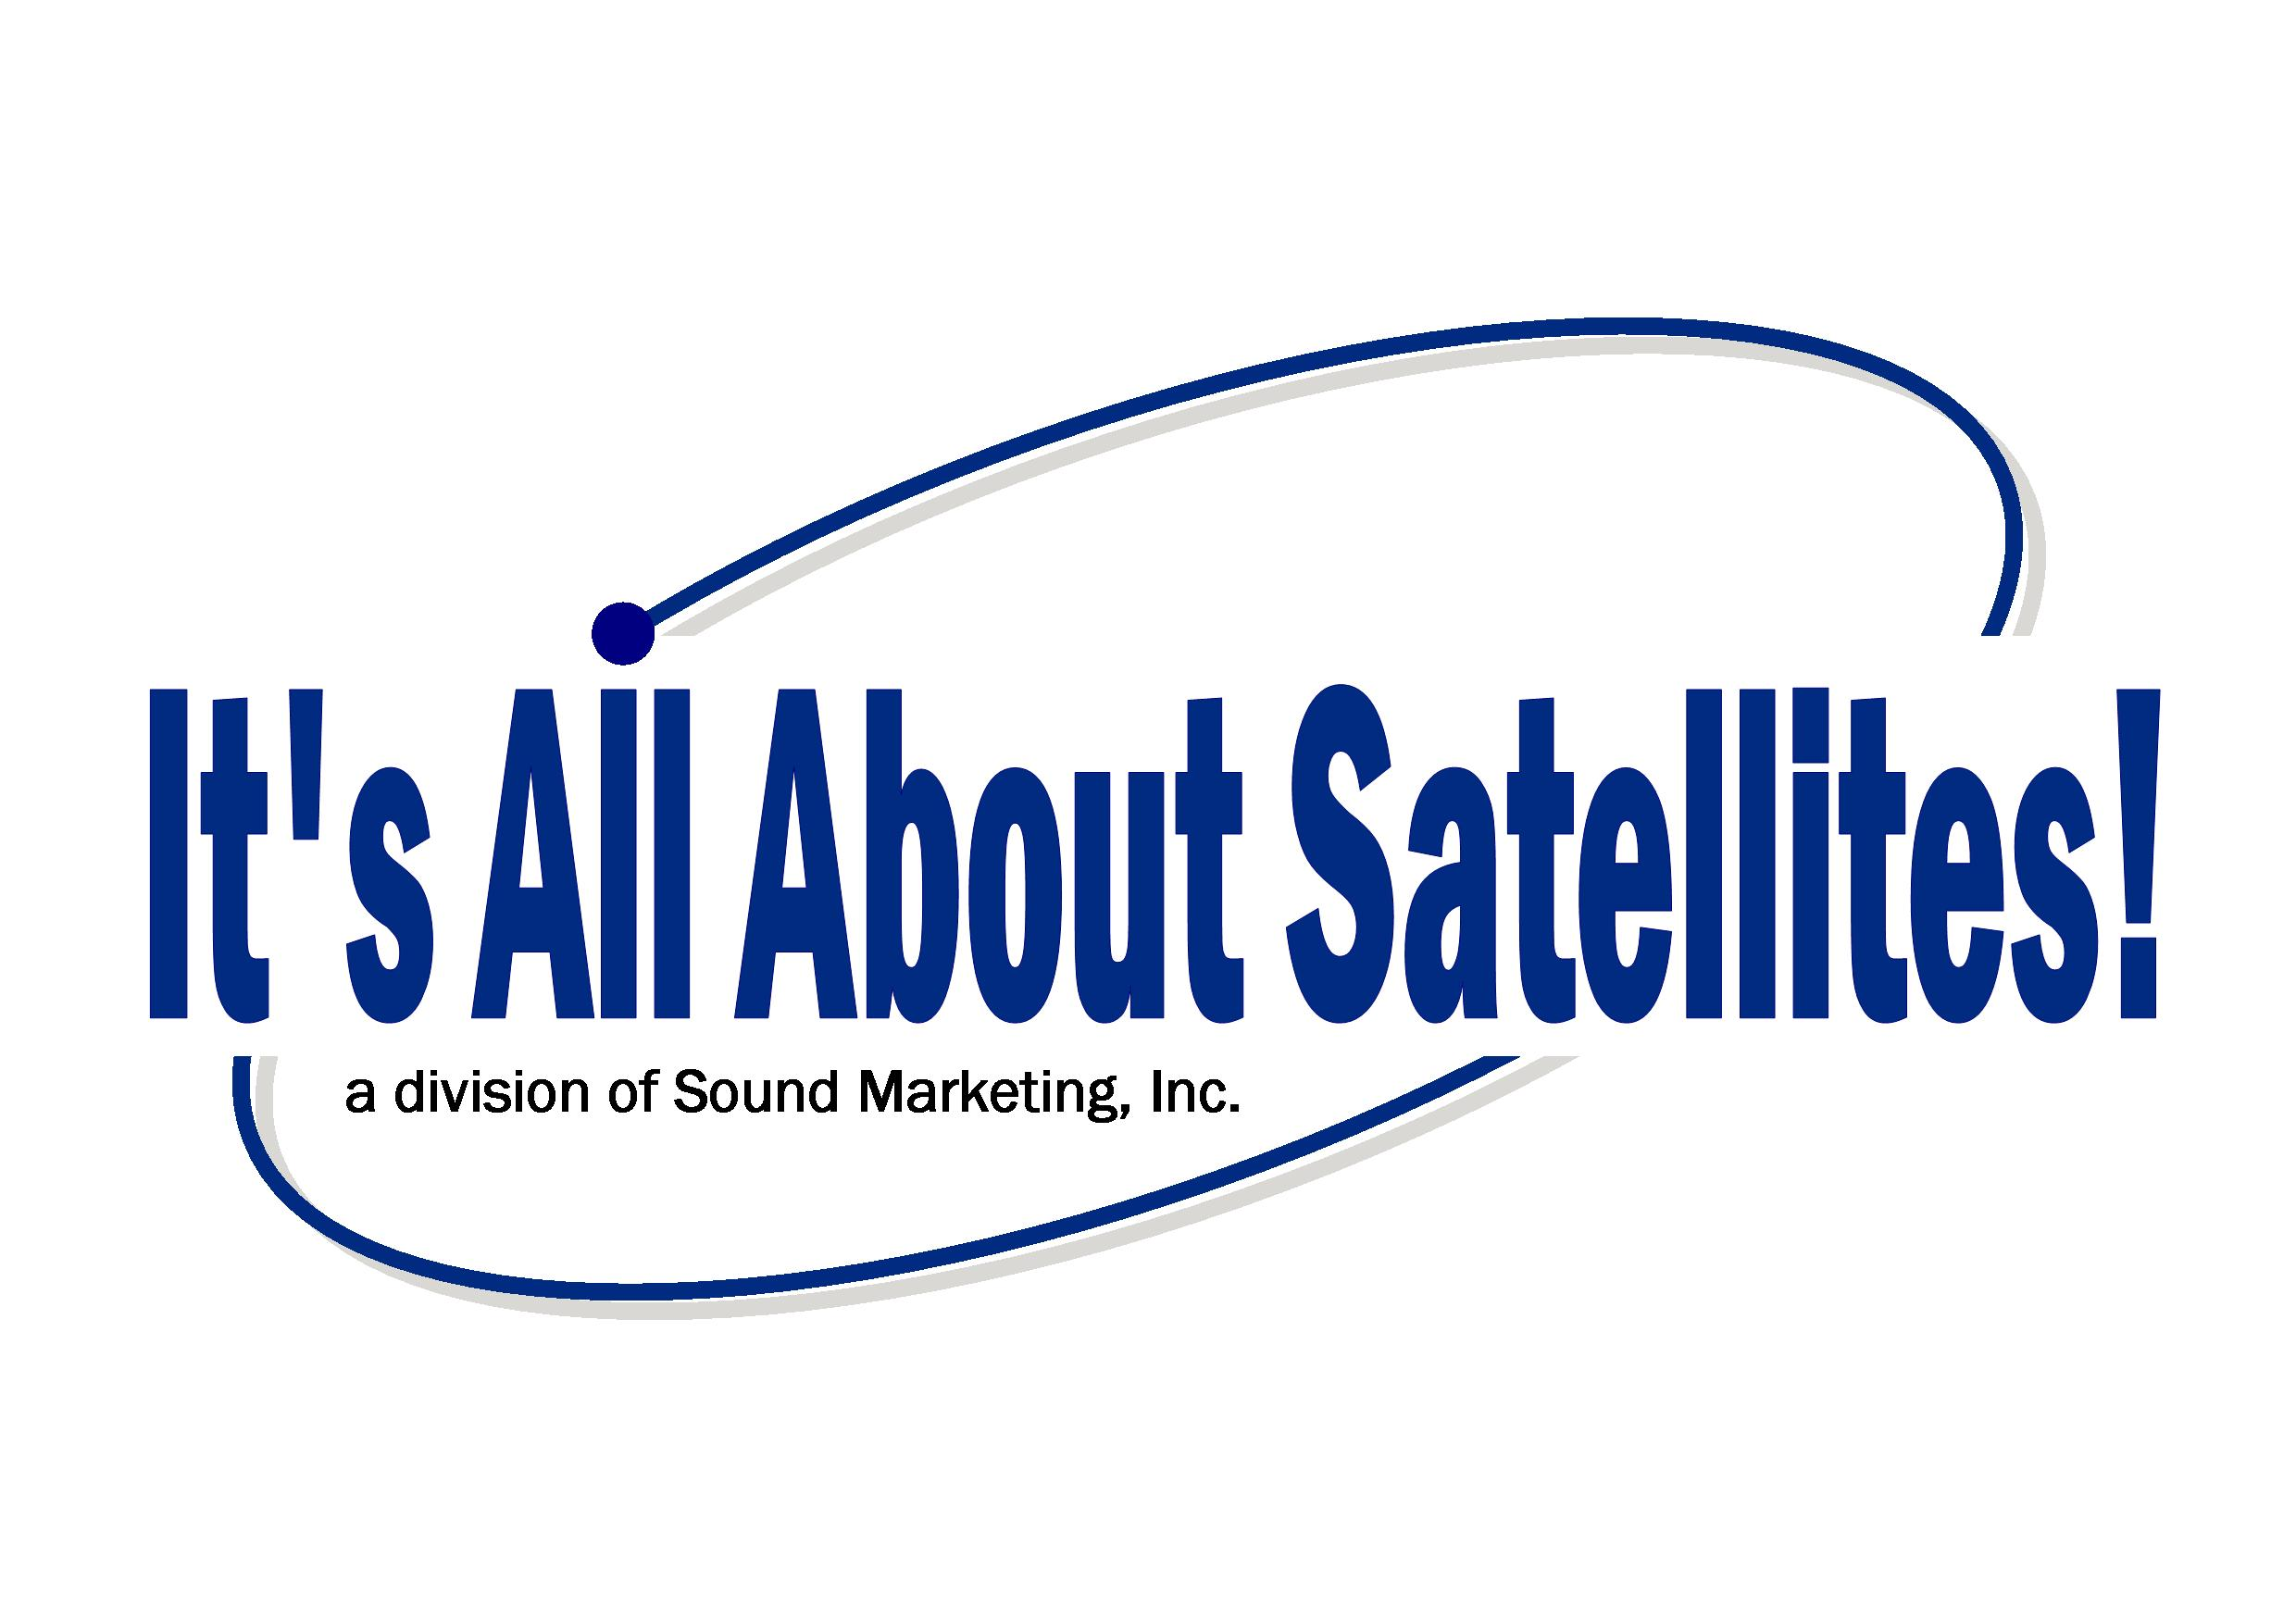 Its All About Satellites | TV for Hotels, Assisted Living, RV Parks and Campgrounds - DIRECTV for Bars, Restaurants & Business